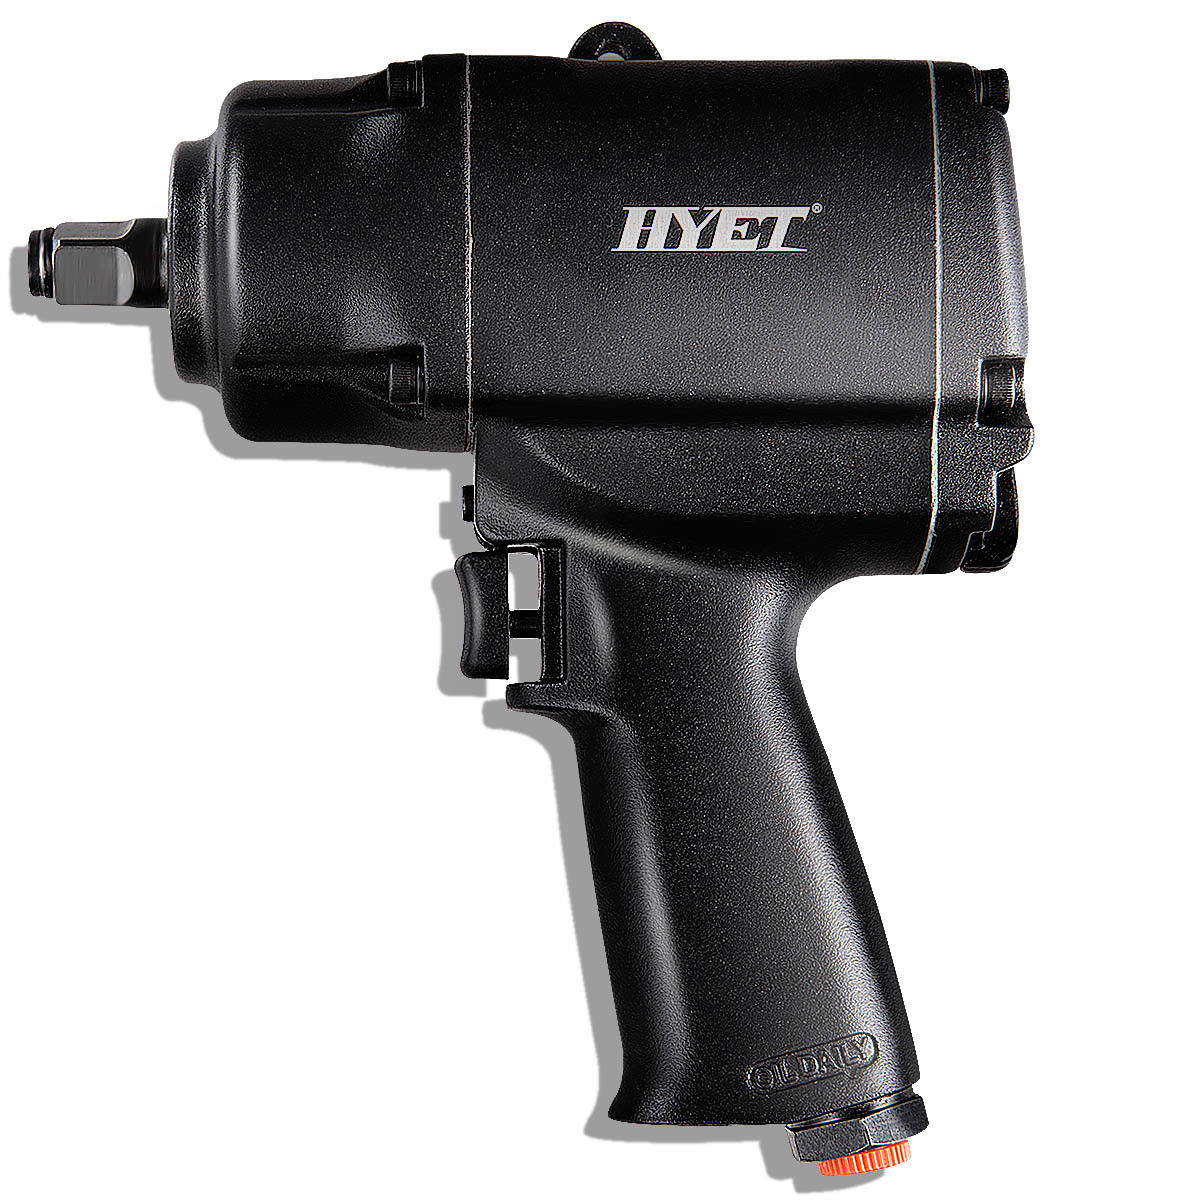 Costway Twin Hammer 1/2-Inch Air Impact Wrench 900 ft-lbs Heavy Duty Pneumatic Tools